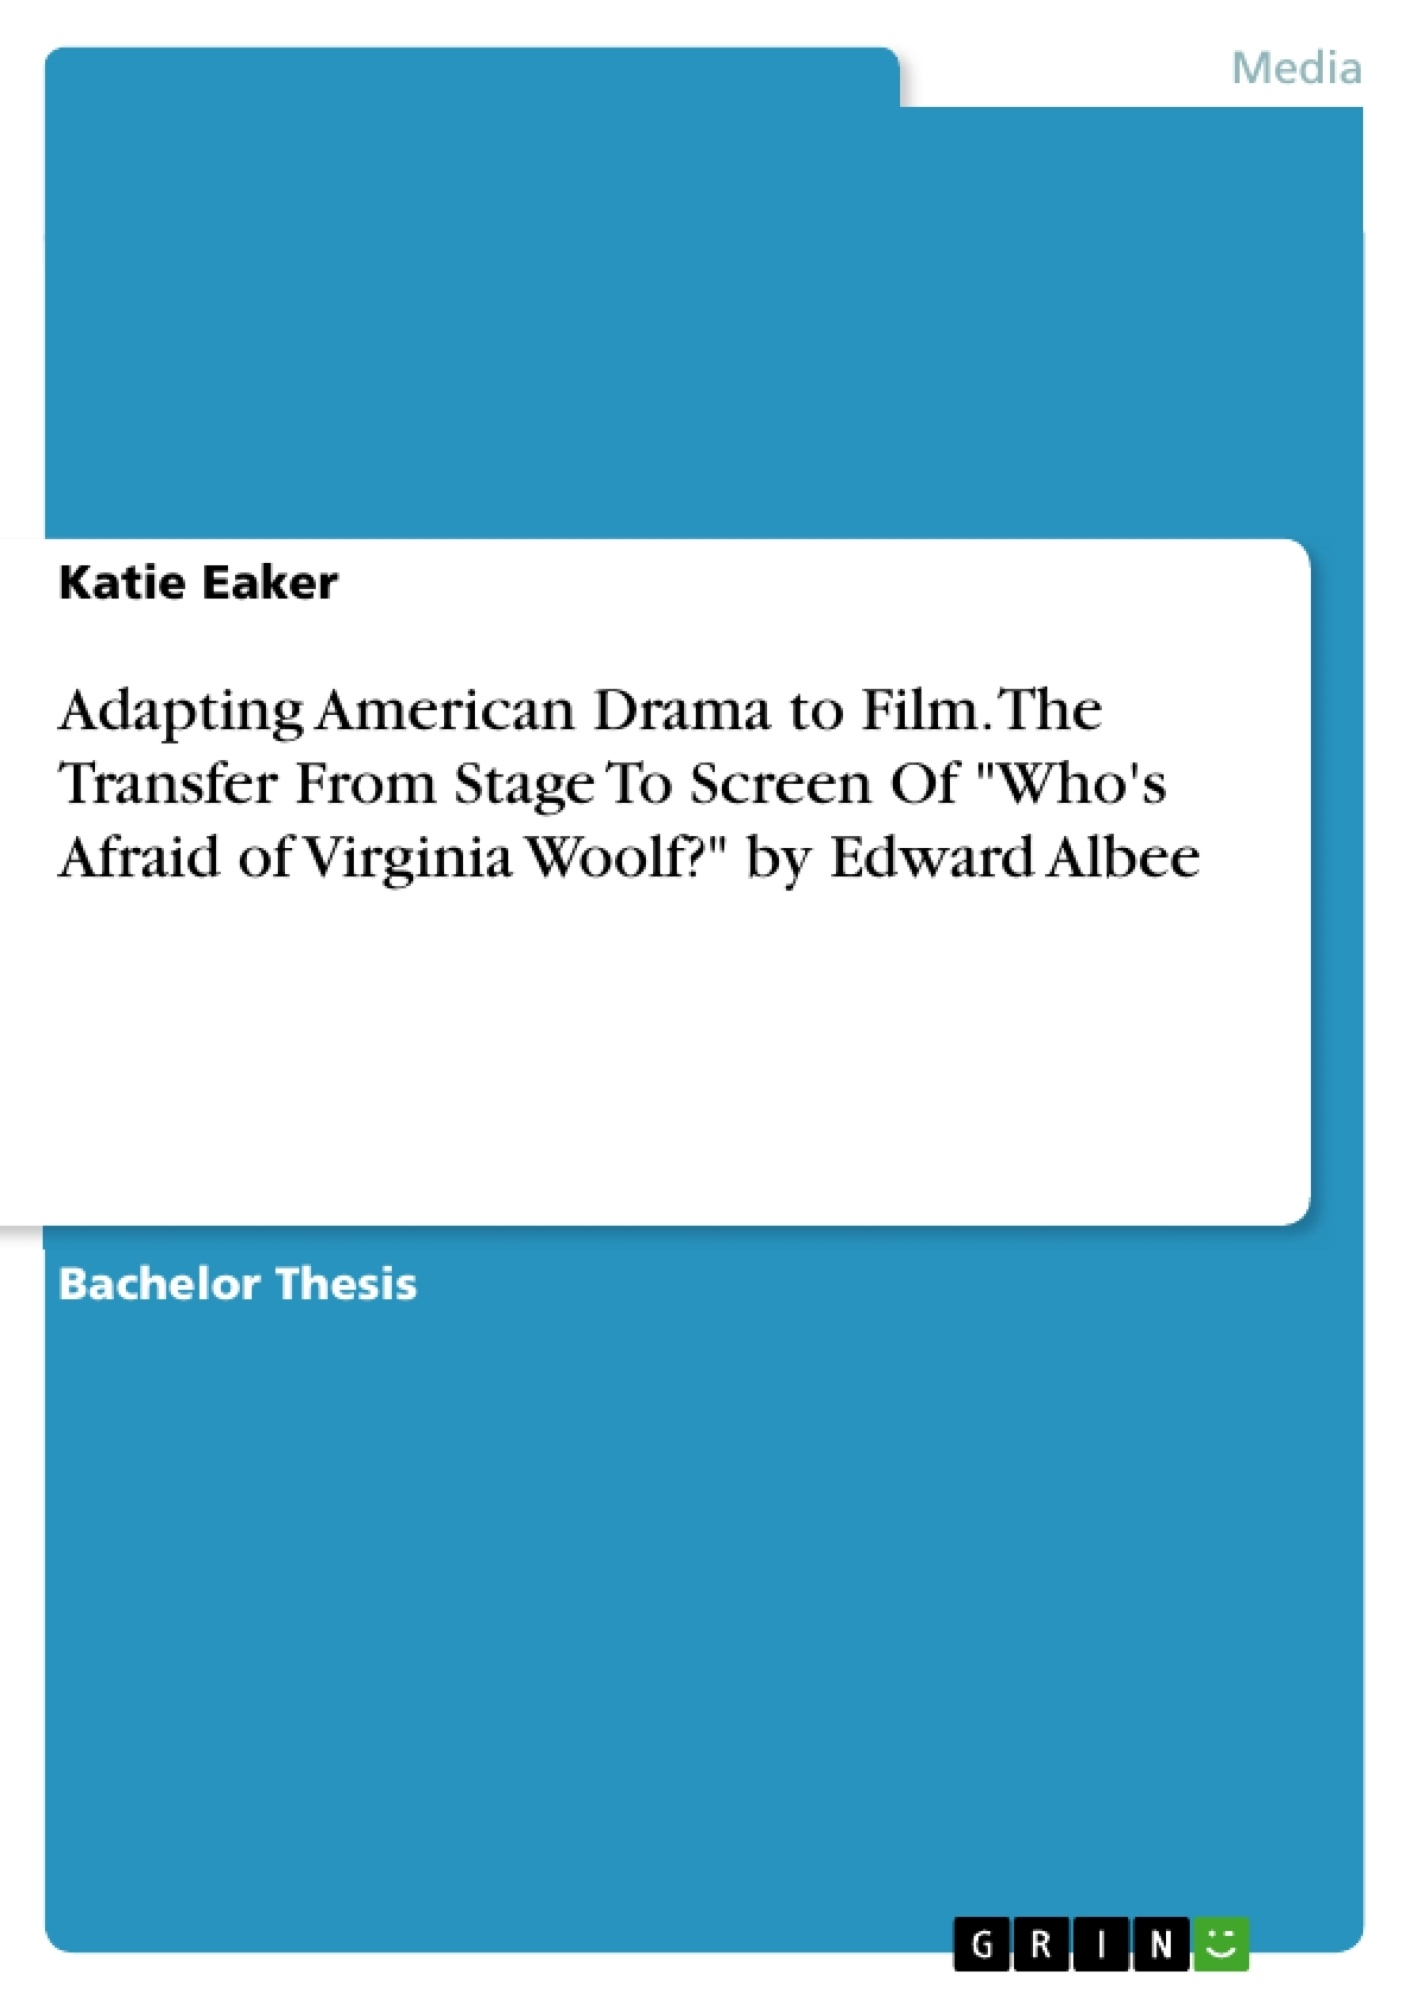 """Title: Adapting American Drama to Film. The Transfer From Stage To Screen Of """"Who's Afraid of Virginia Woolf?"""" by Edward Albee"""